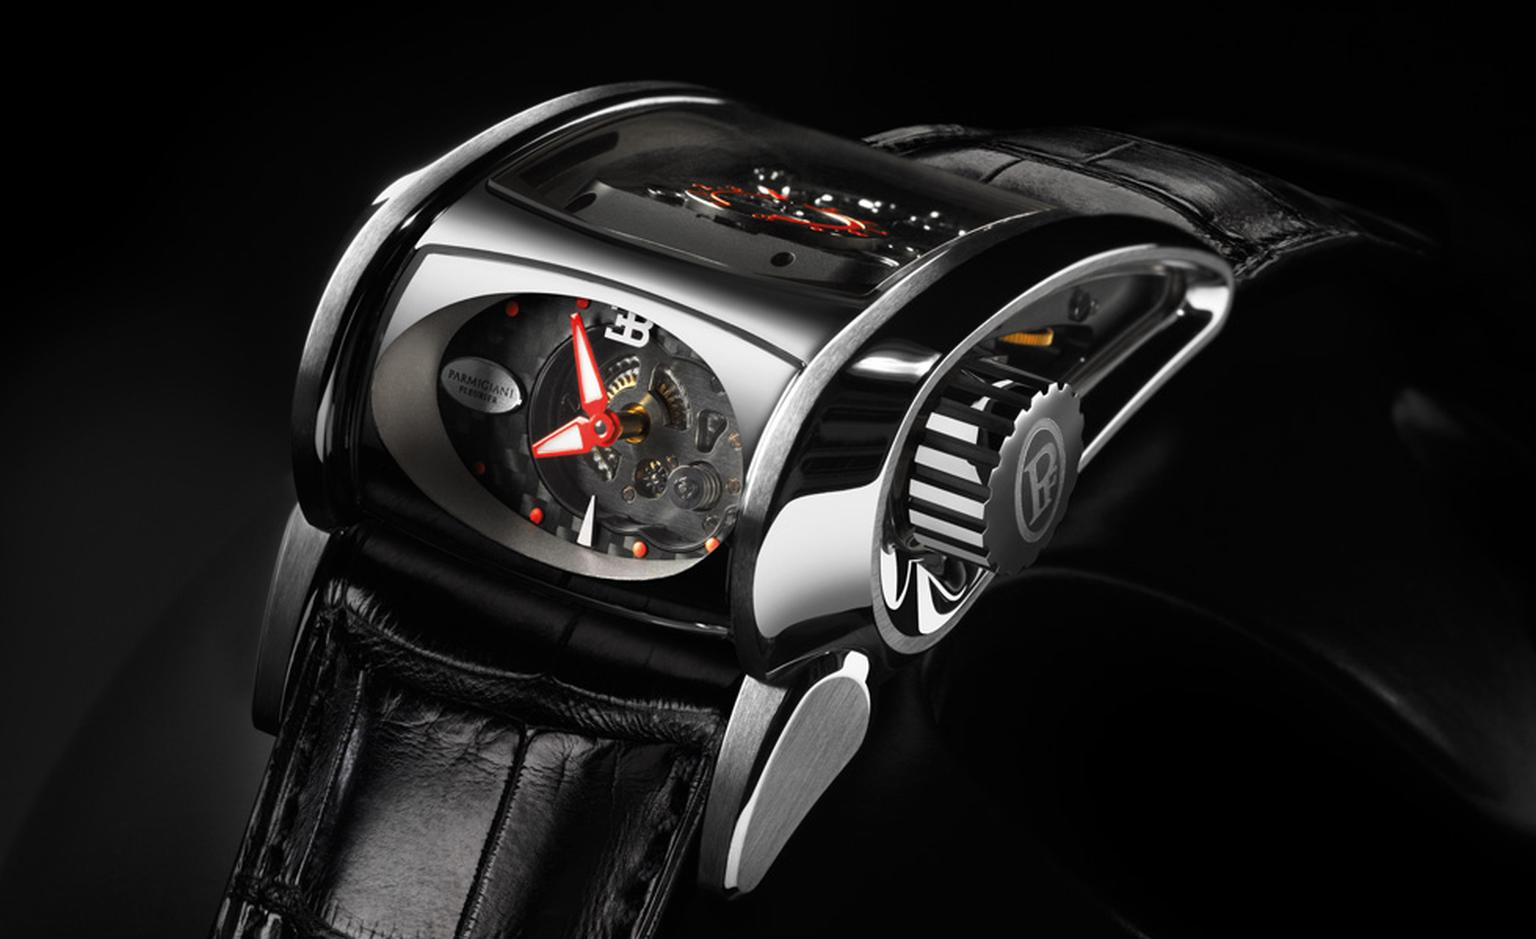 Time is read off the side of the case on the Parmigiani Fleurier Bugatti Super Sport, so no need to take your hands off the wheel to glance at the time